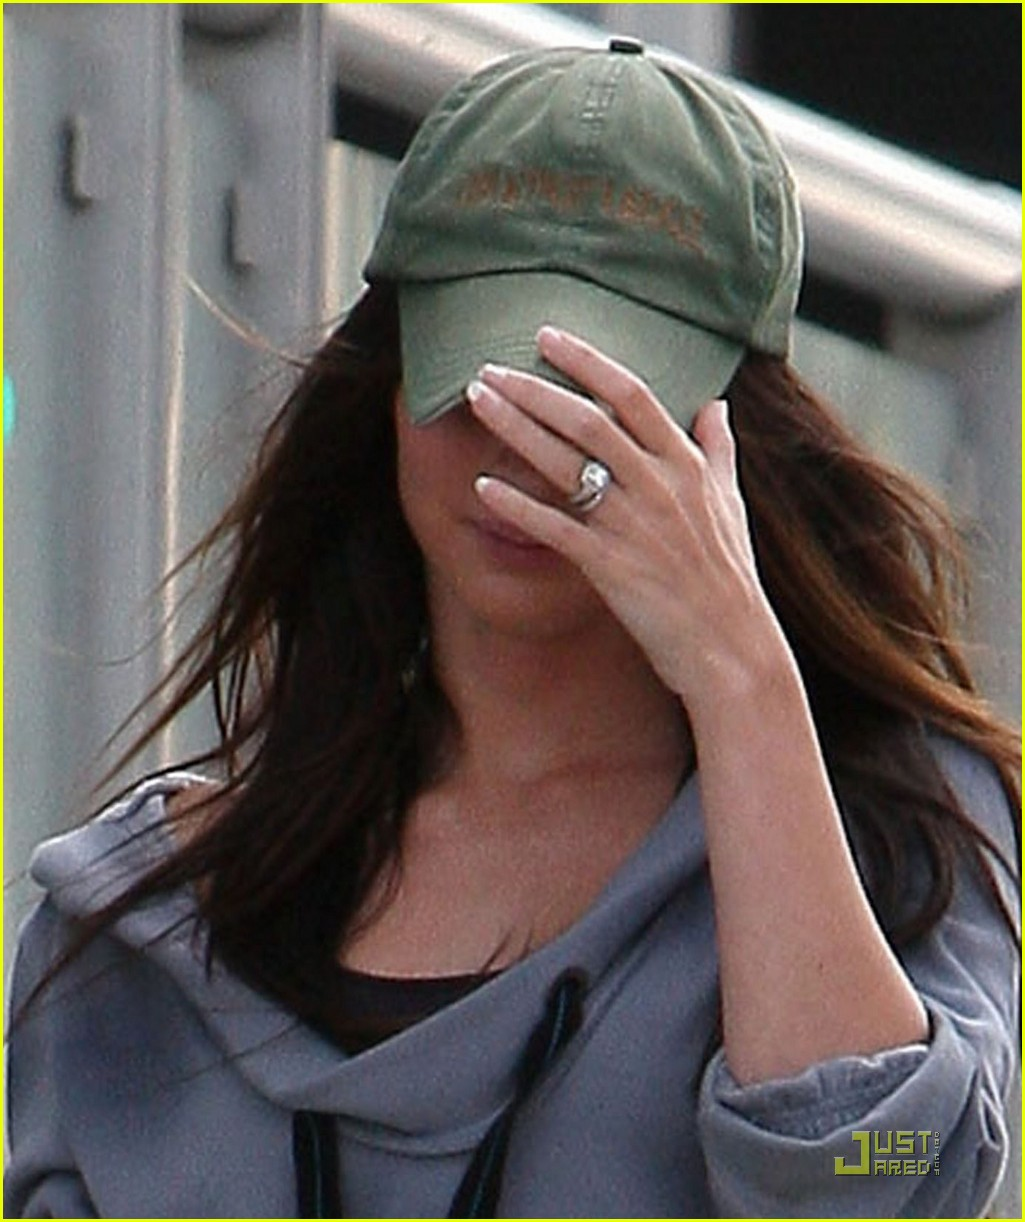 Full Sized Photo Of Megan Fox Wedding Ring 02 Photo